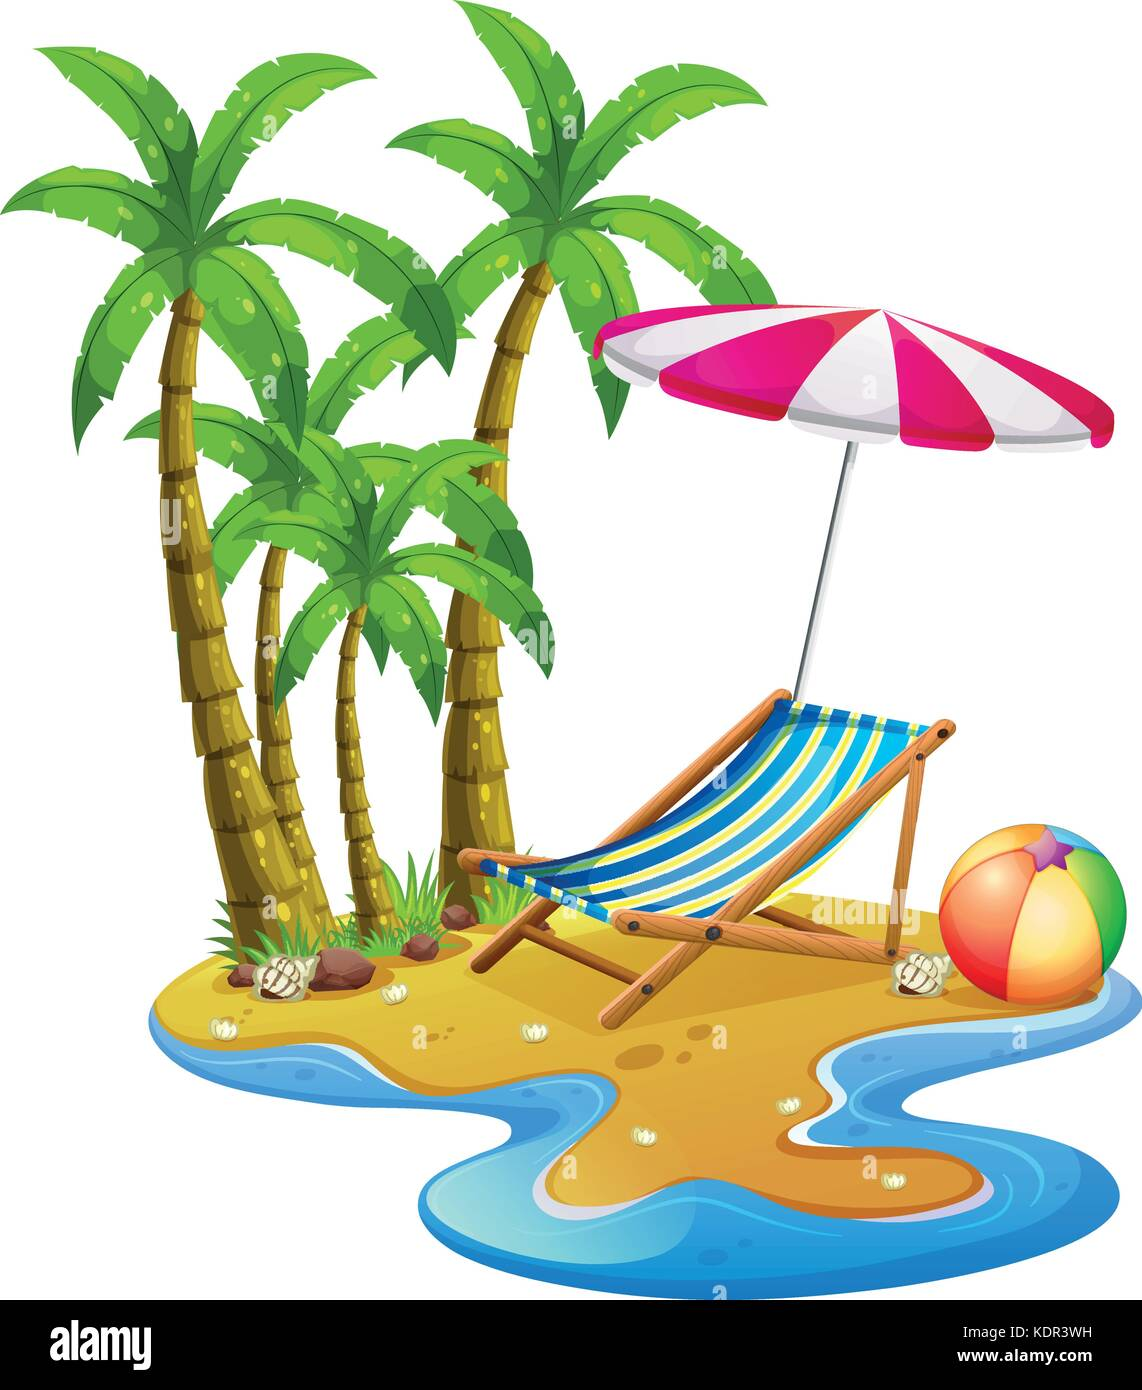 Disegno Ombrellone E Sdraio.Beach Scene With Chair And Umbrella Illustration Stock Vector Art